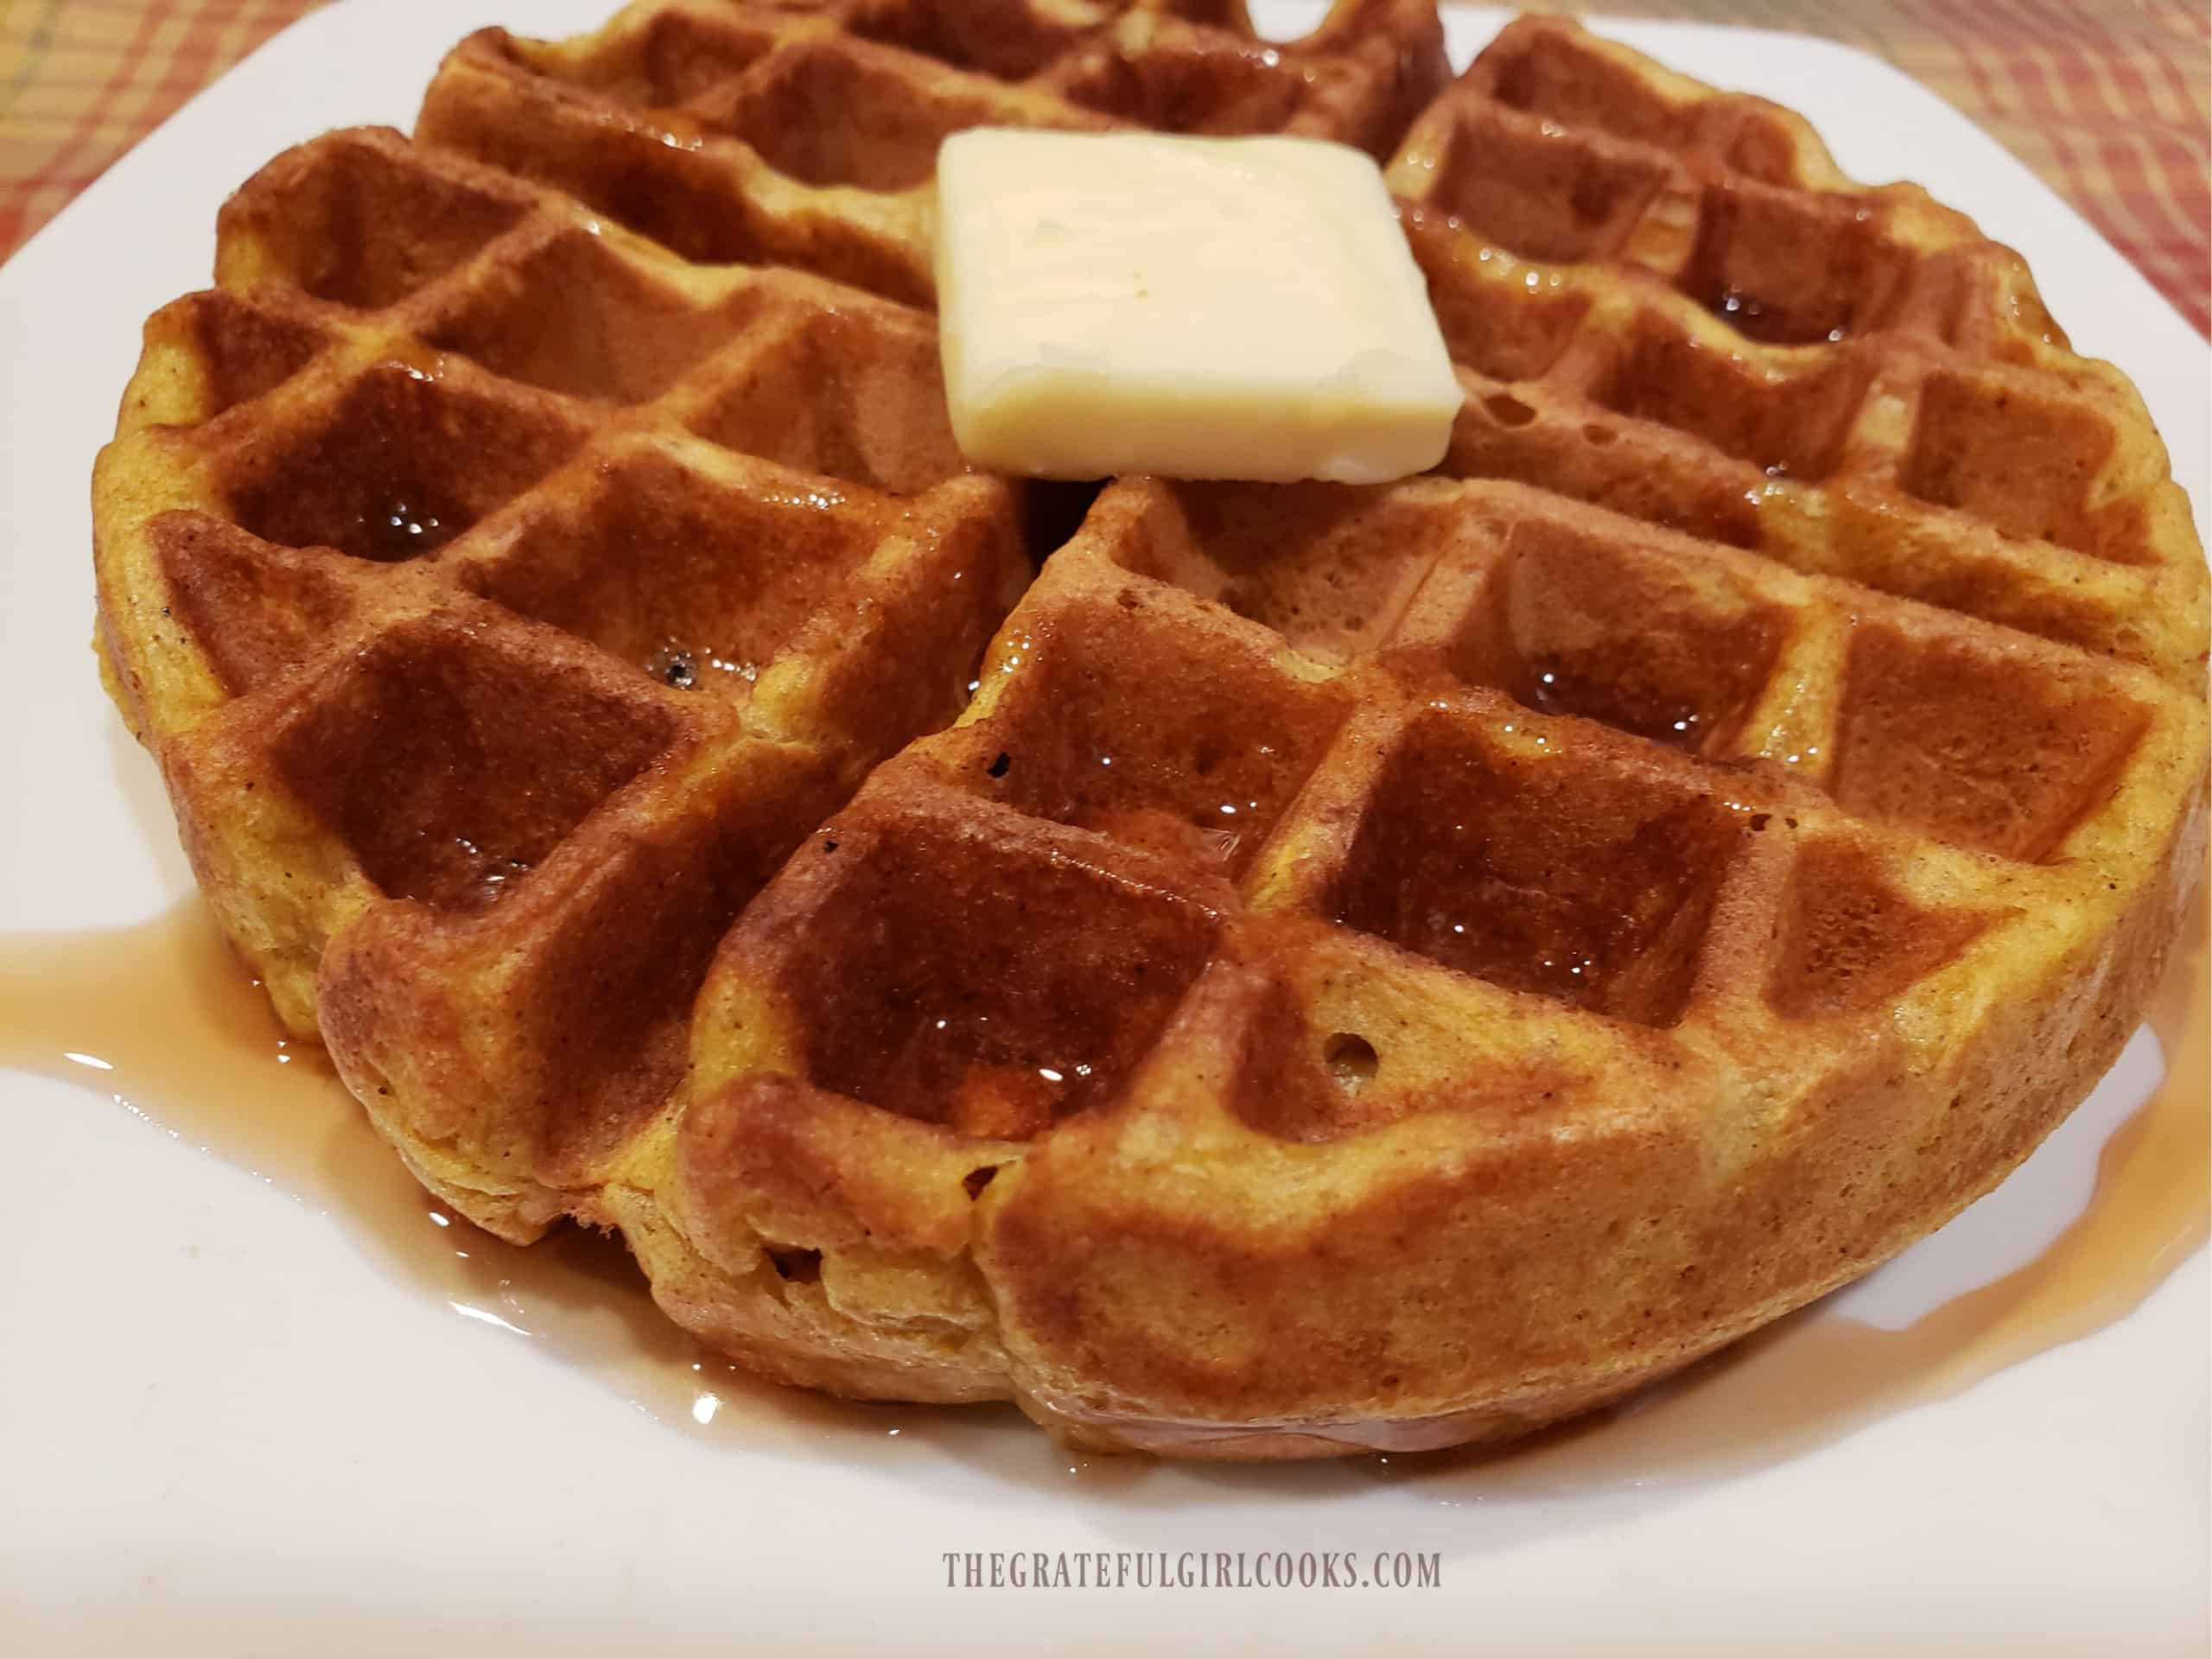 Butter and drizzled maple syrup top off the pumpkin spice waffles.